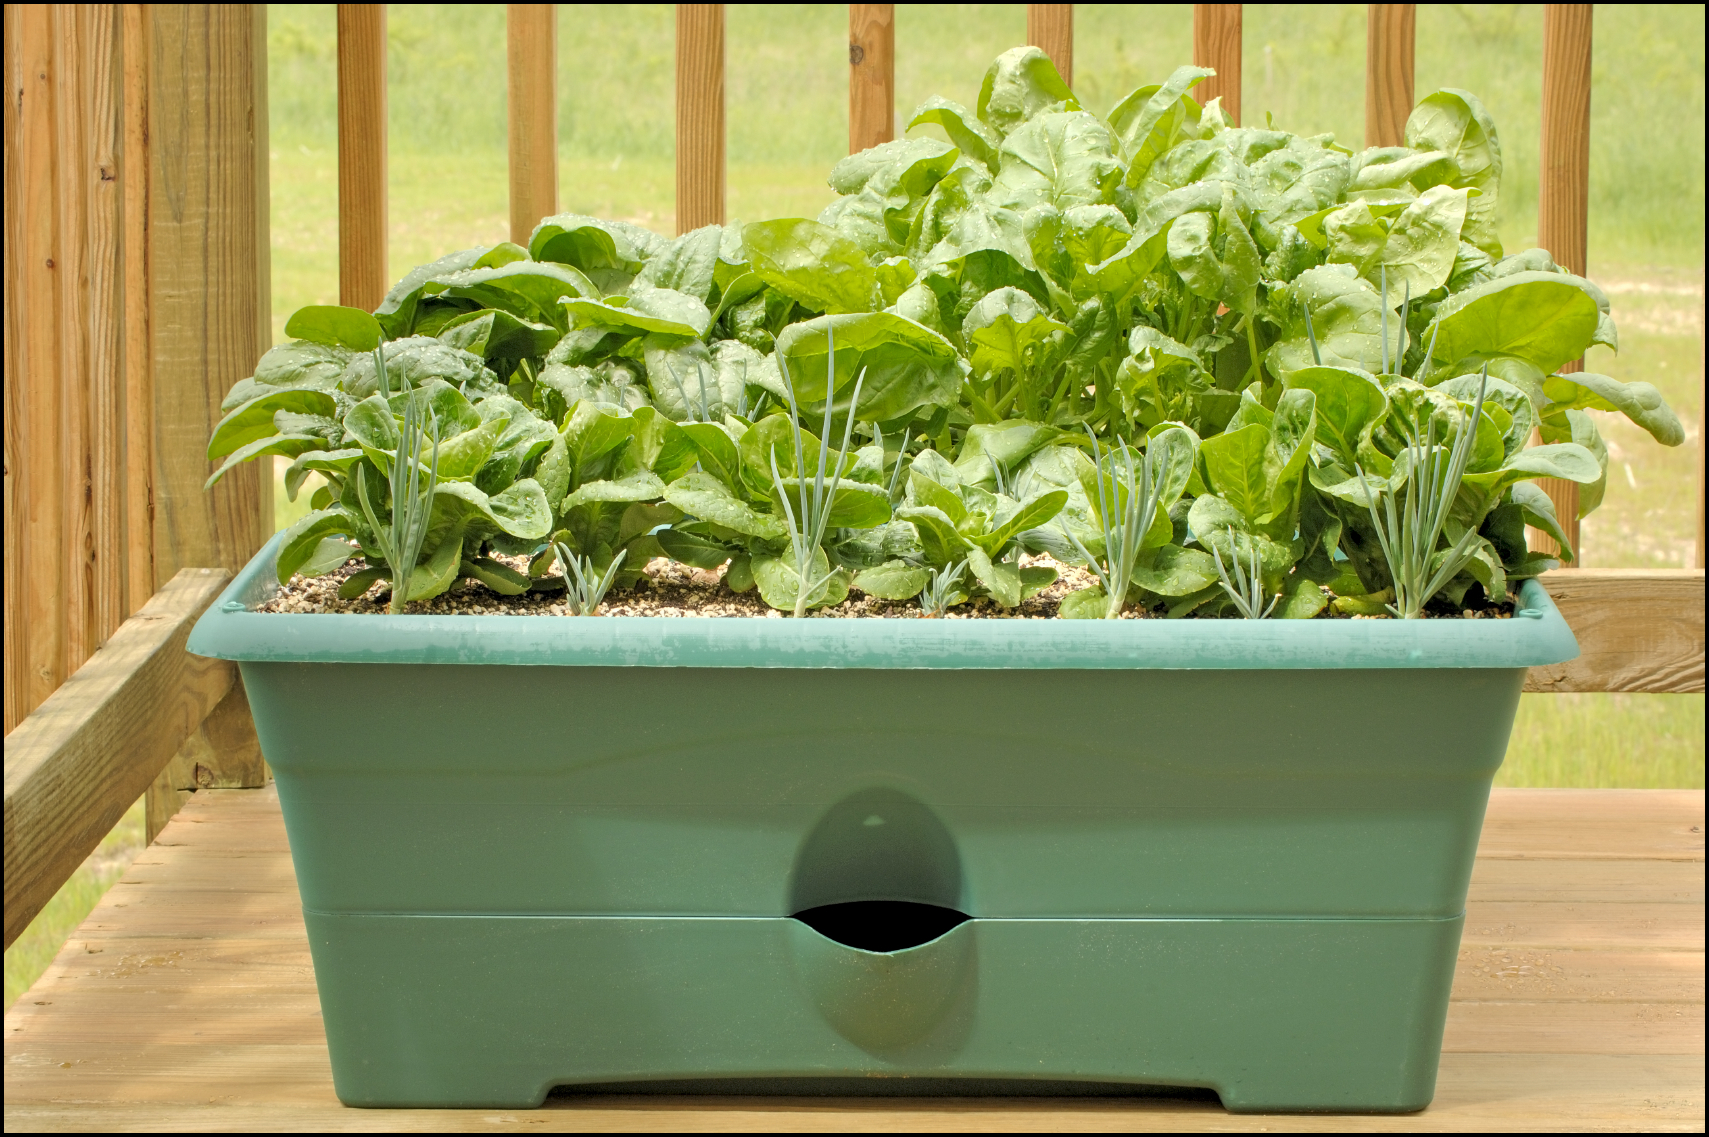 How To Grow Spinach Indoors